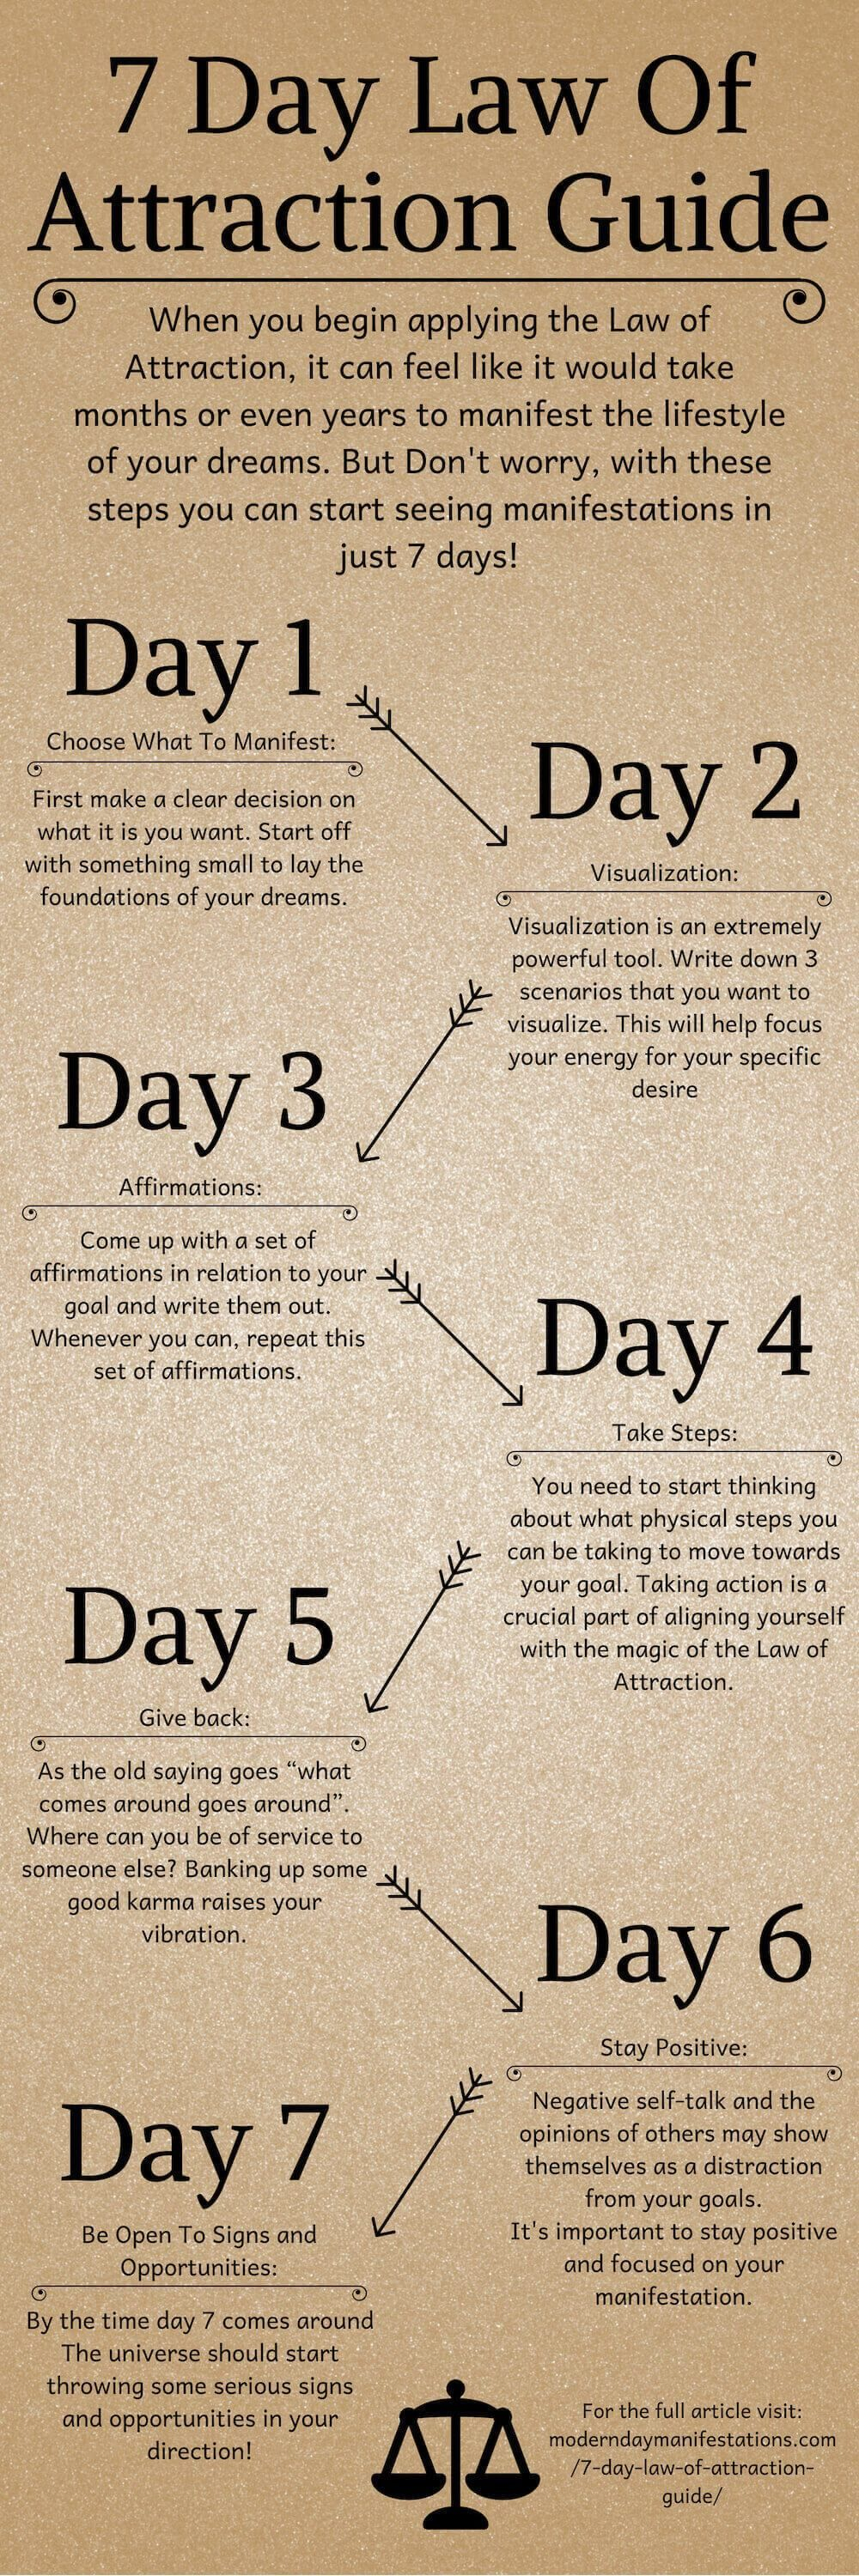 6 Day Law Of Attraction Guide  Modern Day Manifestations  Law of